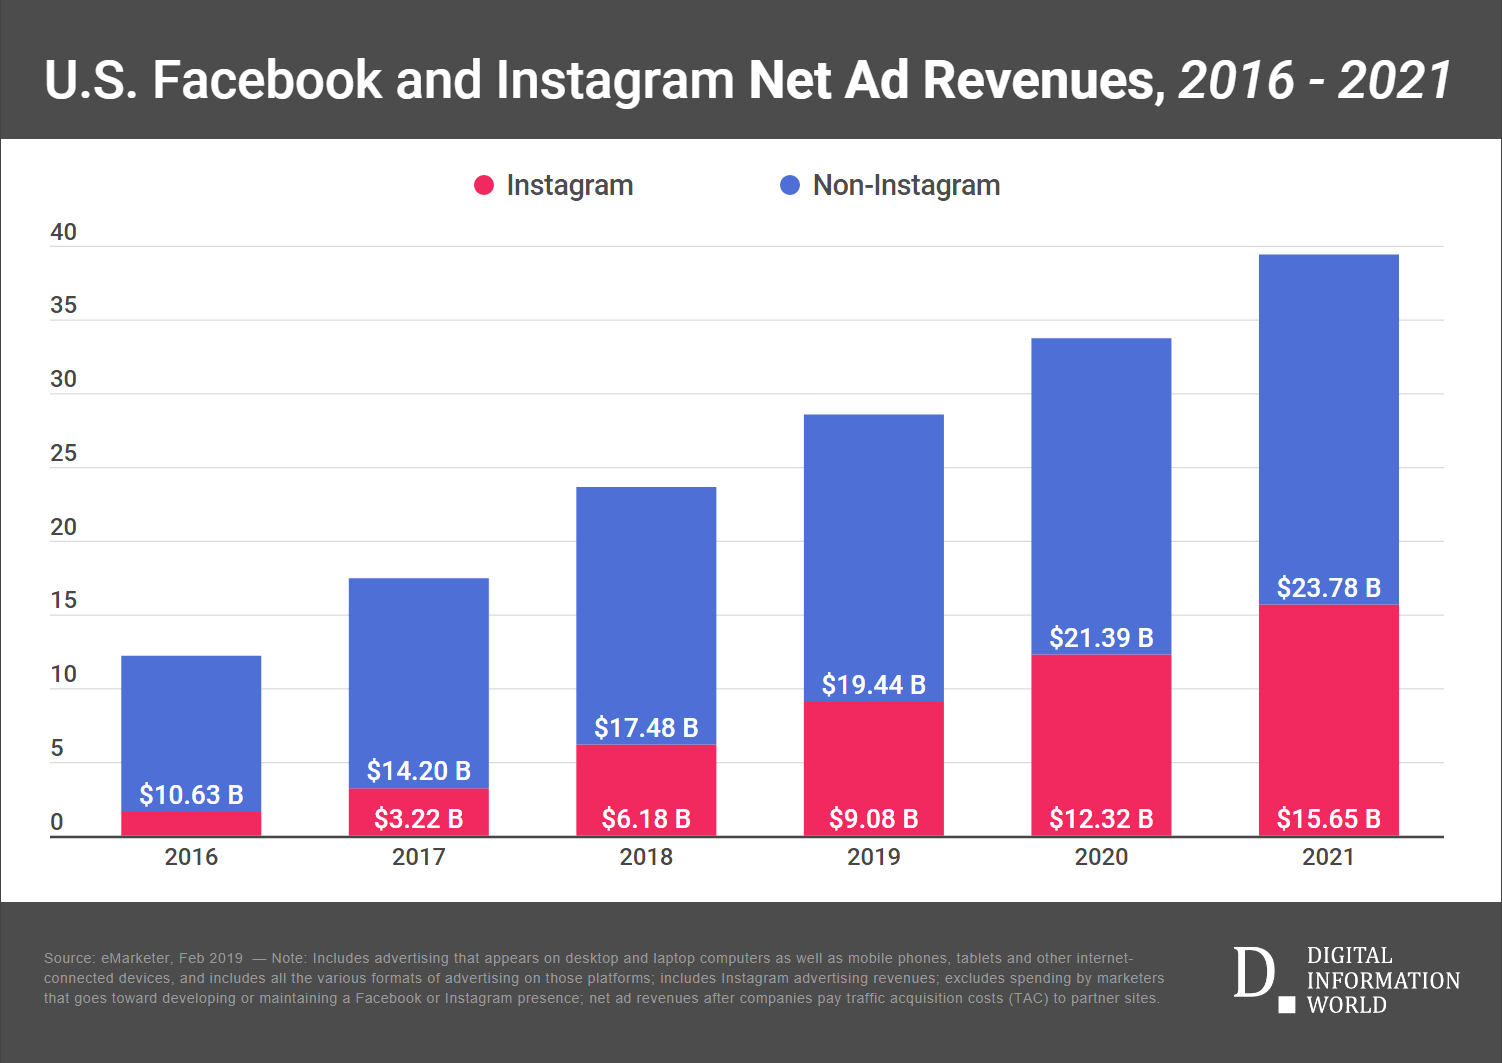 US Facebook and Instagram Net Ad Revenues, 2016-2021 (billions)